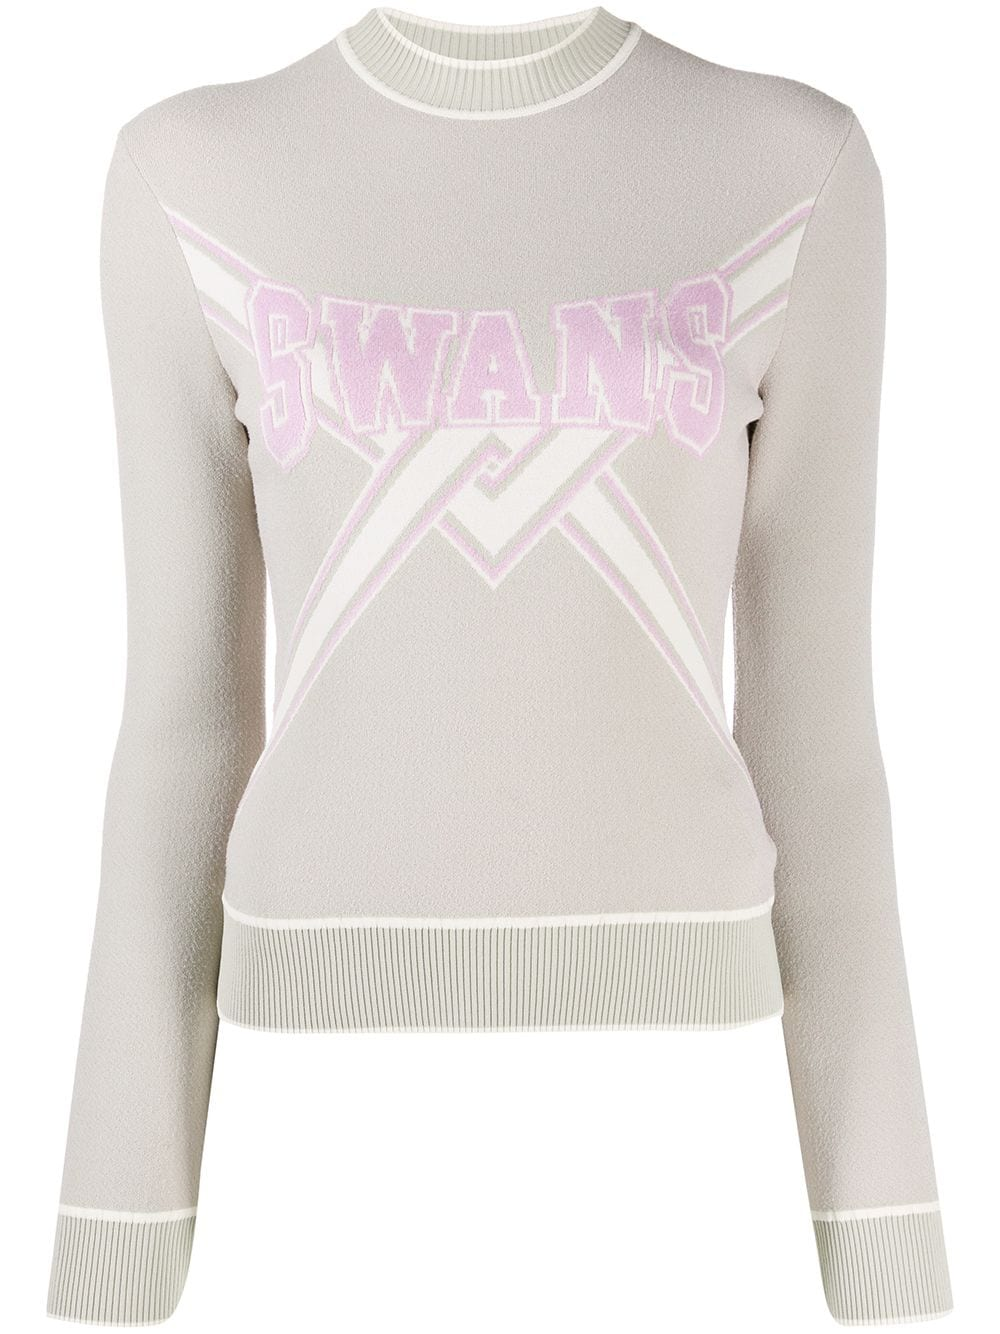 Off-White 'Swans' Pullover - Nude